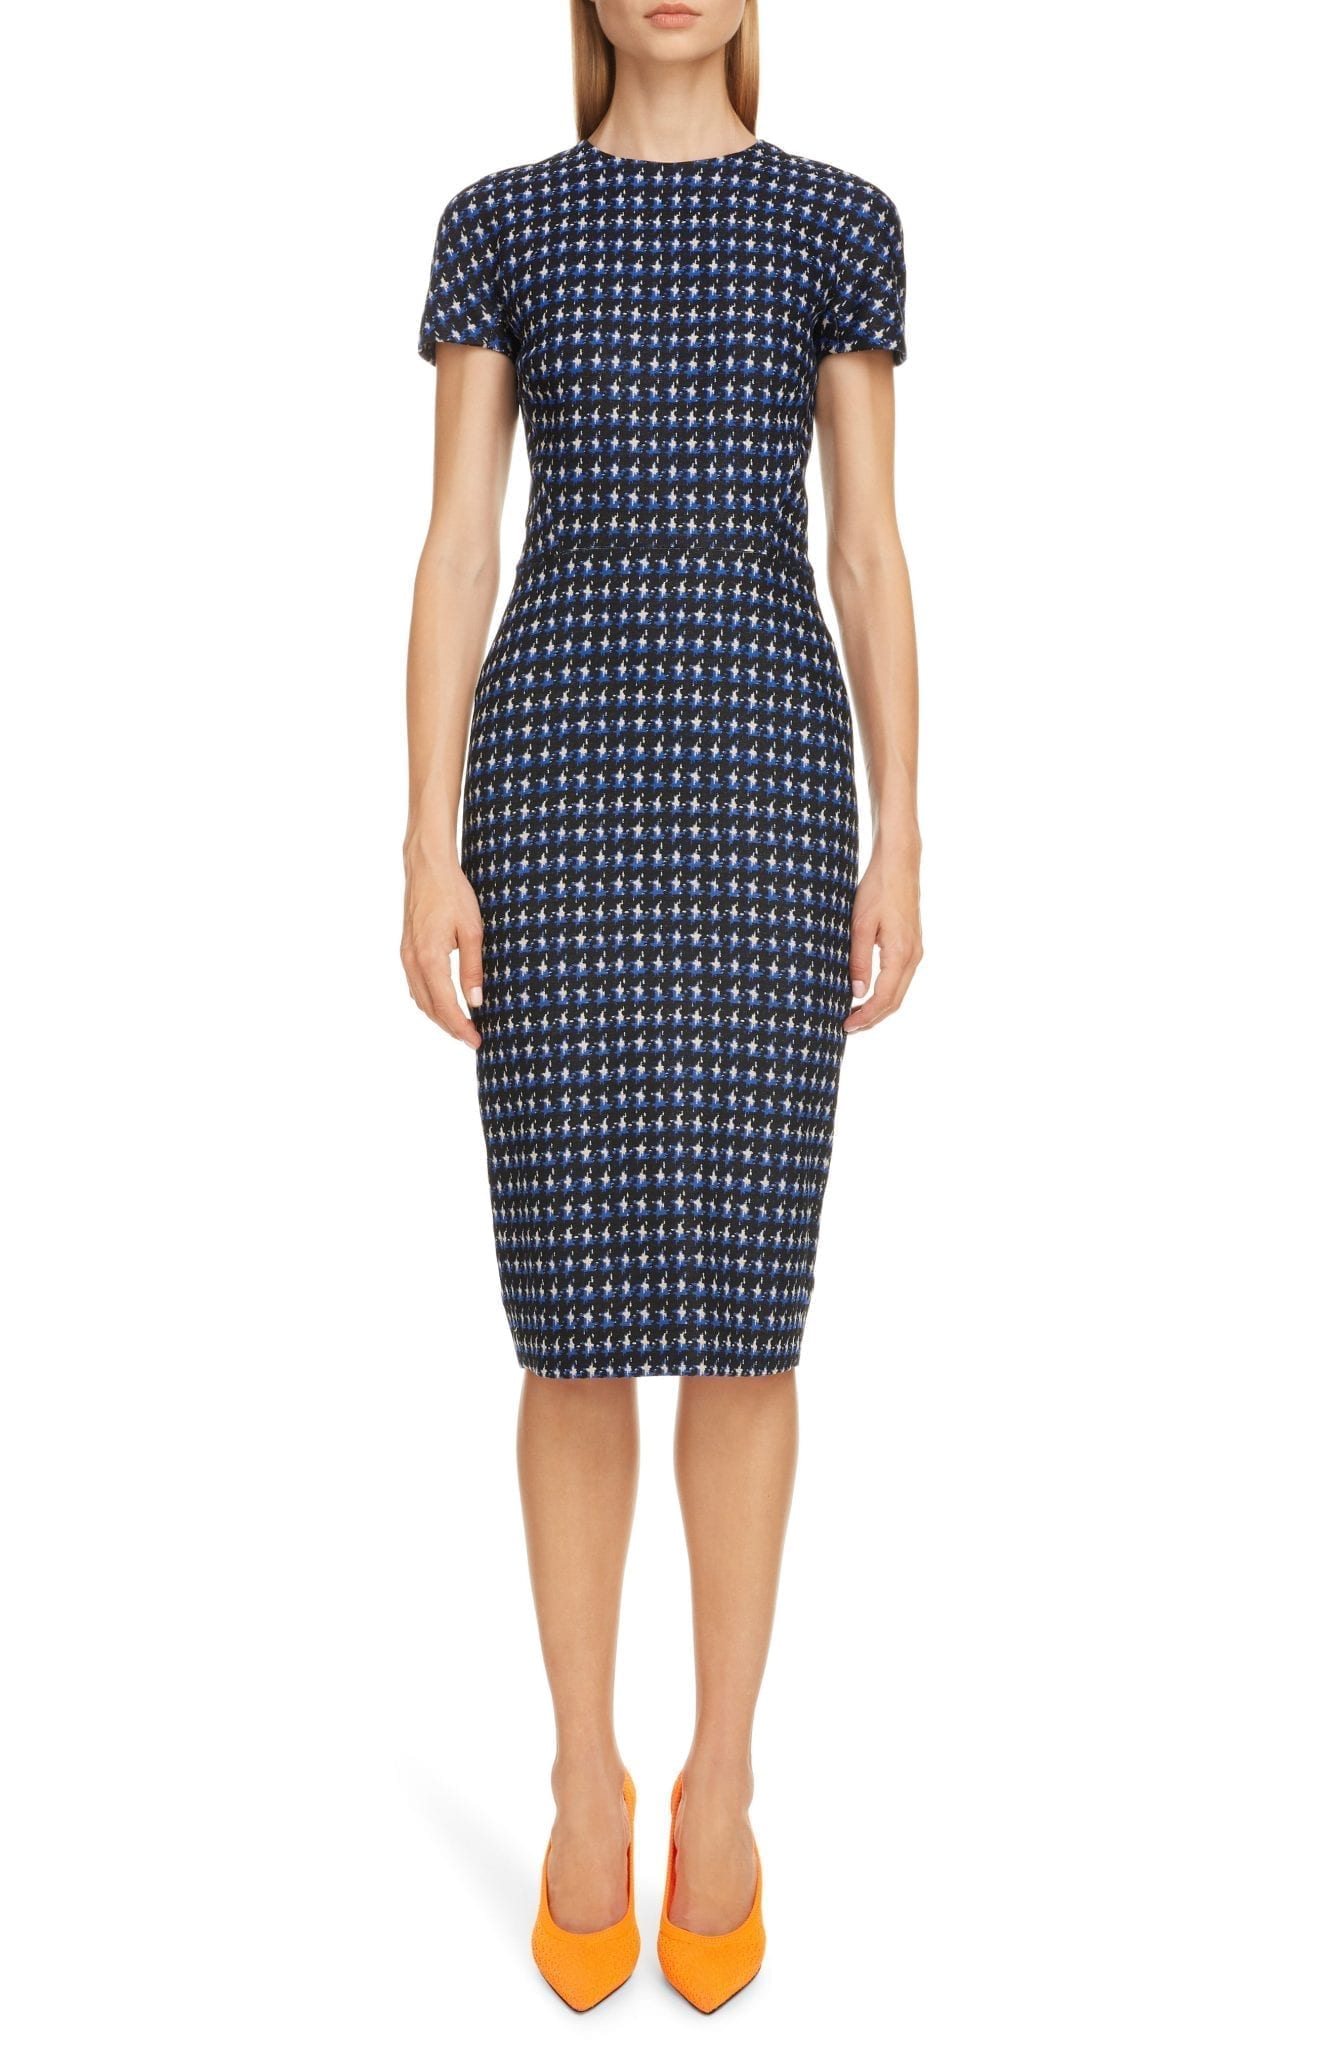 VICTORIA BECKHAM Houndstooth Jacquard Sheath Dress